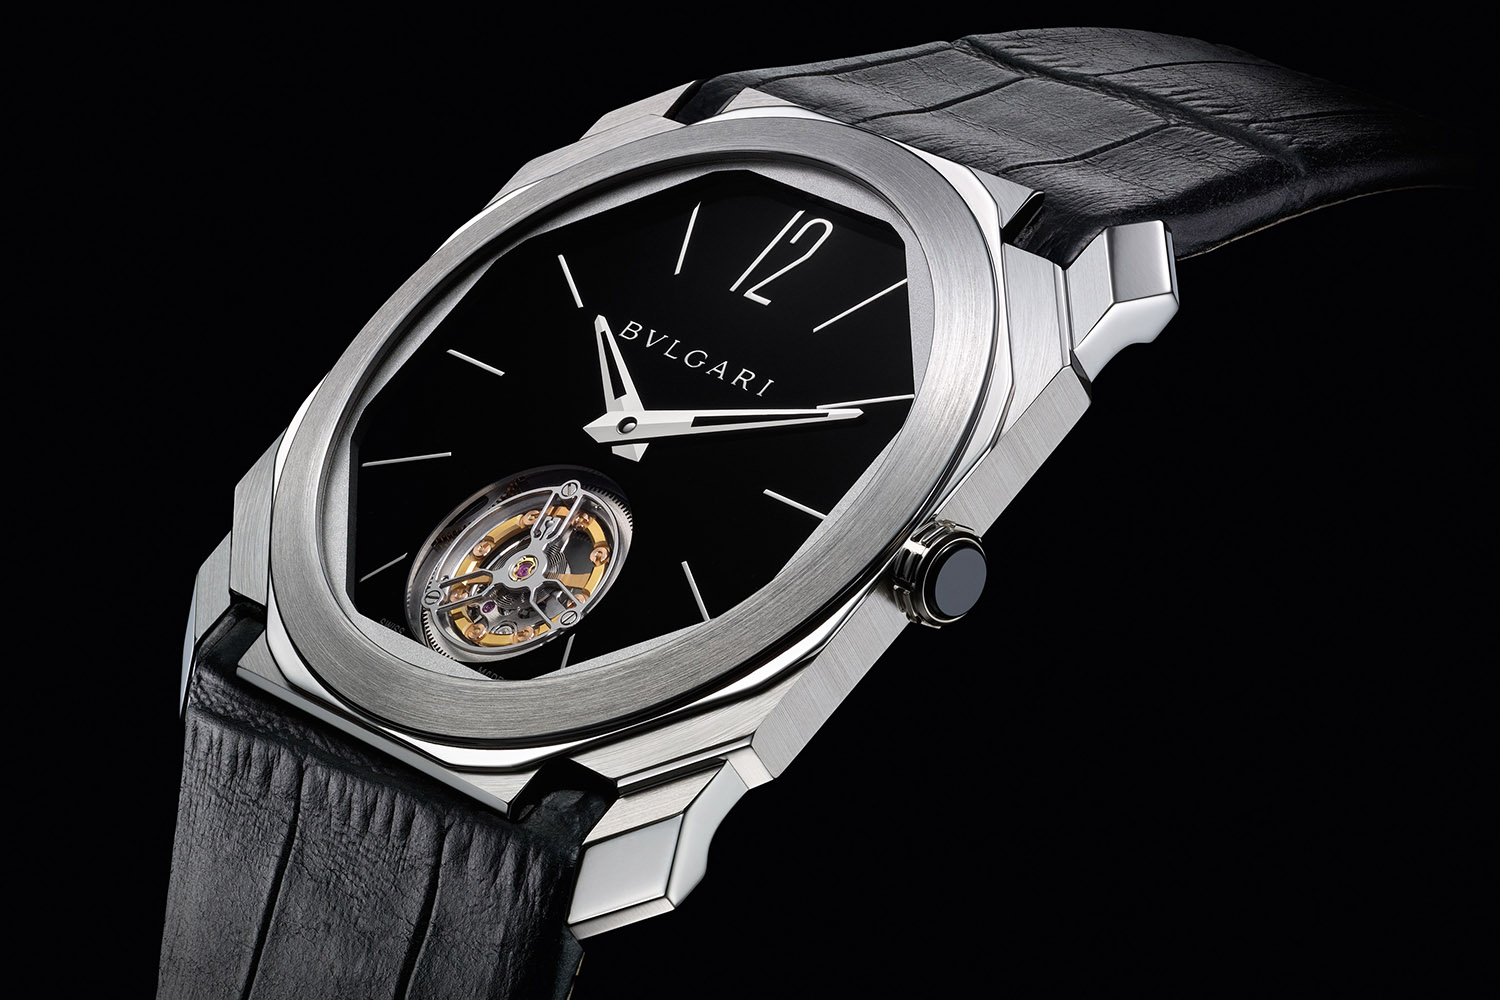 Bvlgari Octo Finissimo Tourbillon - world's Thinnest tourbillon